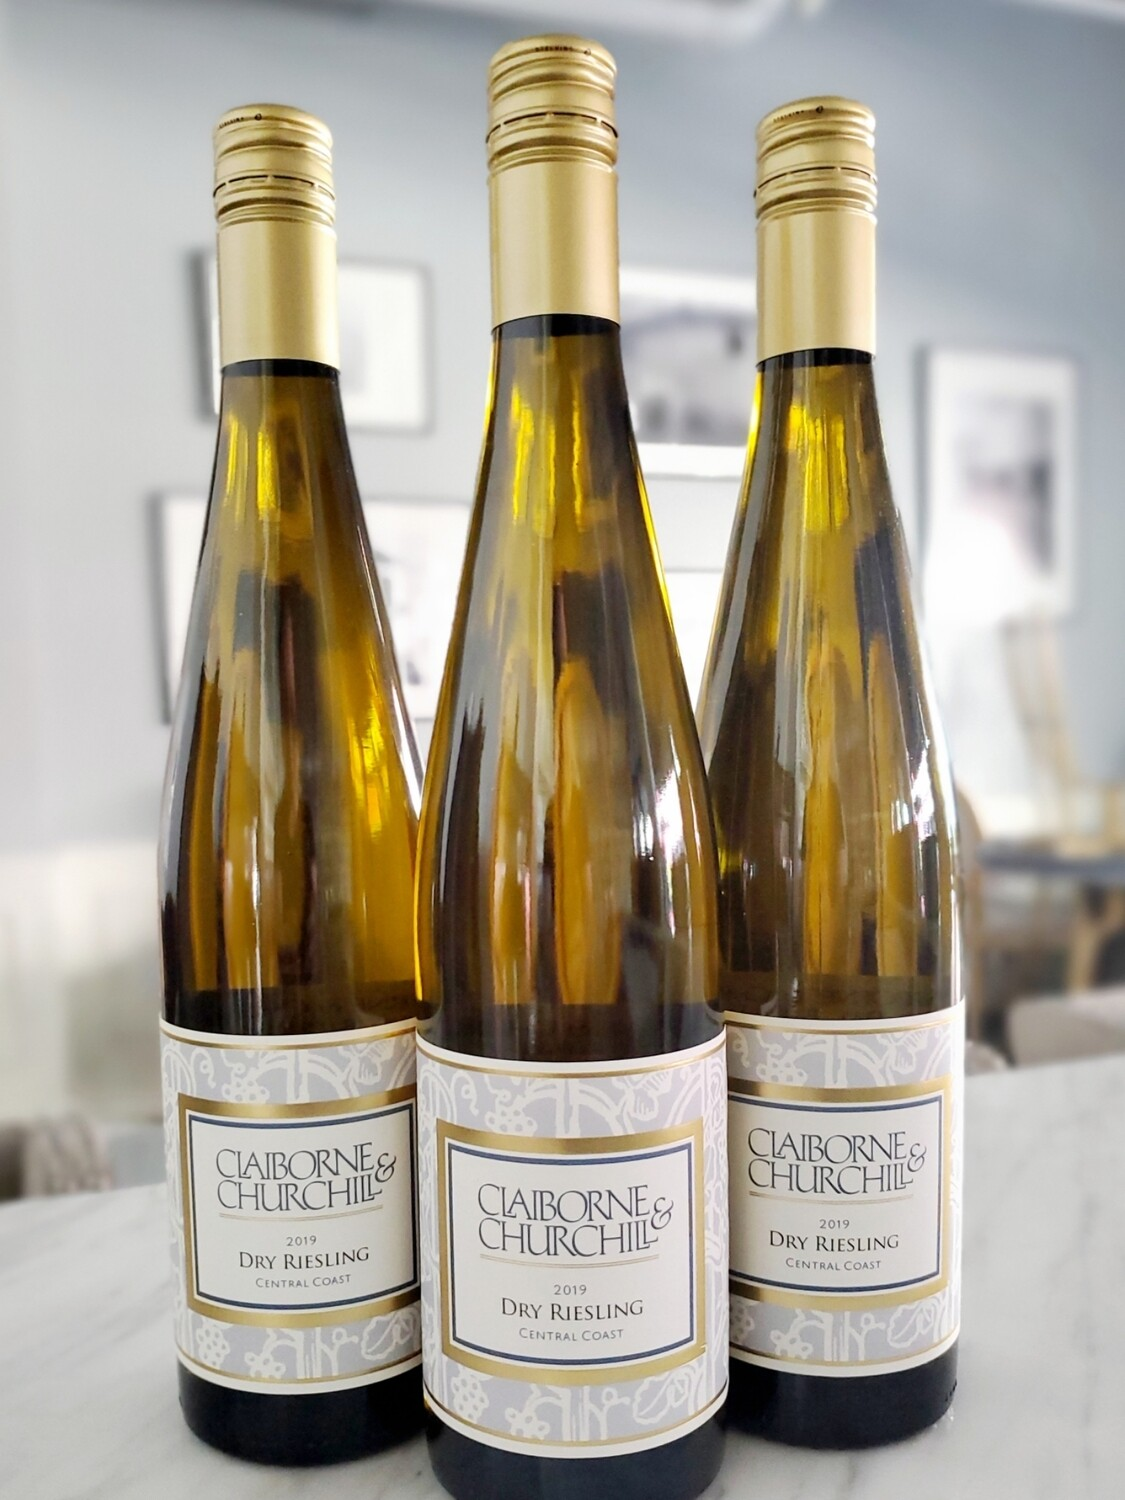 Claiborne & Churchill Dy Riesling, Central Coast 2019